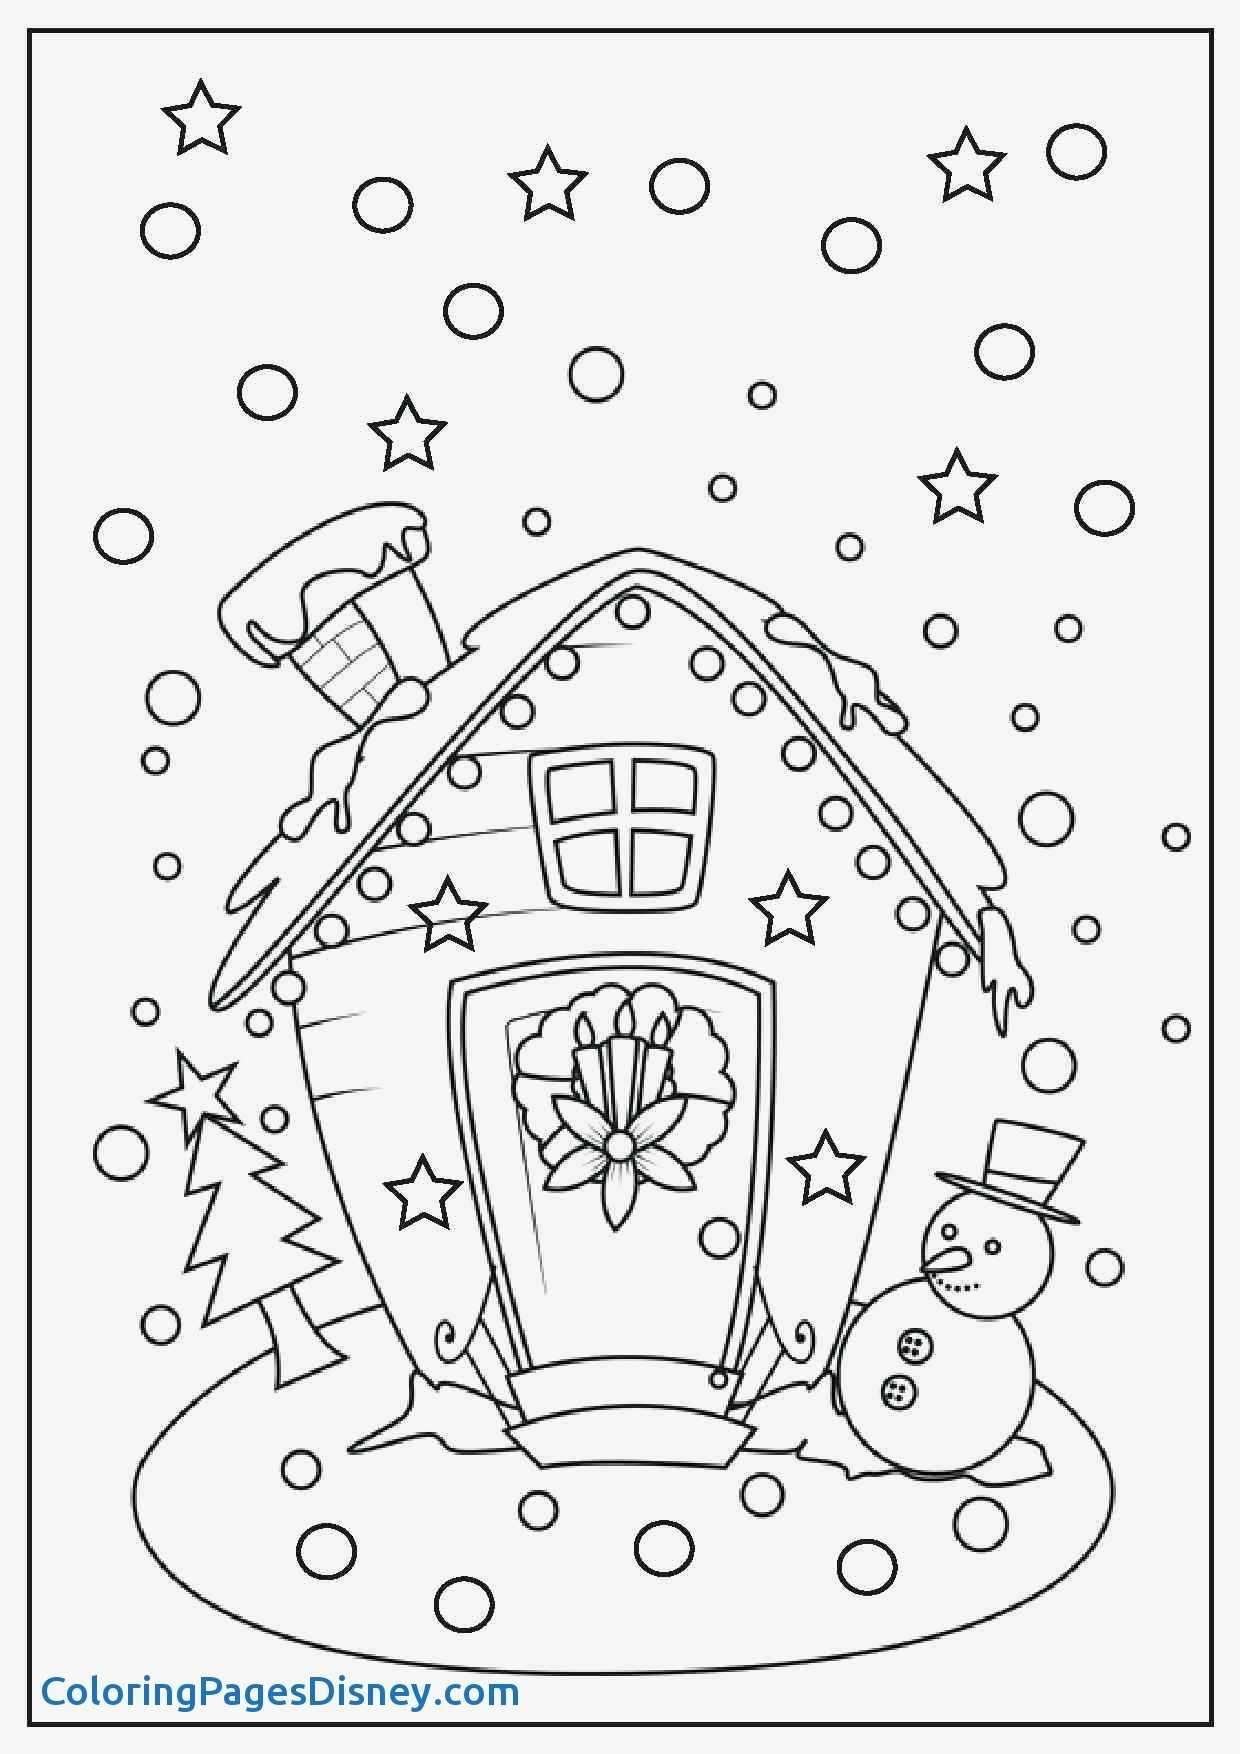 Free Coloring Pages Com Christmas With Lego